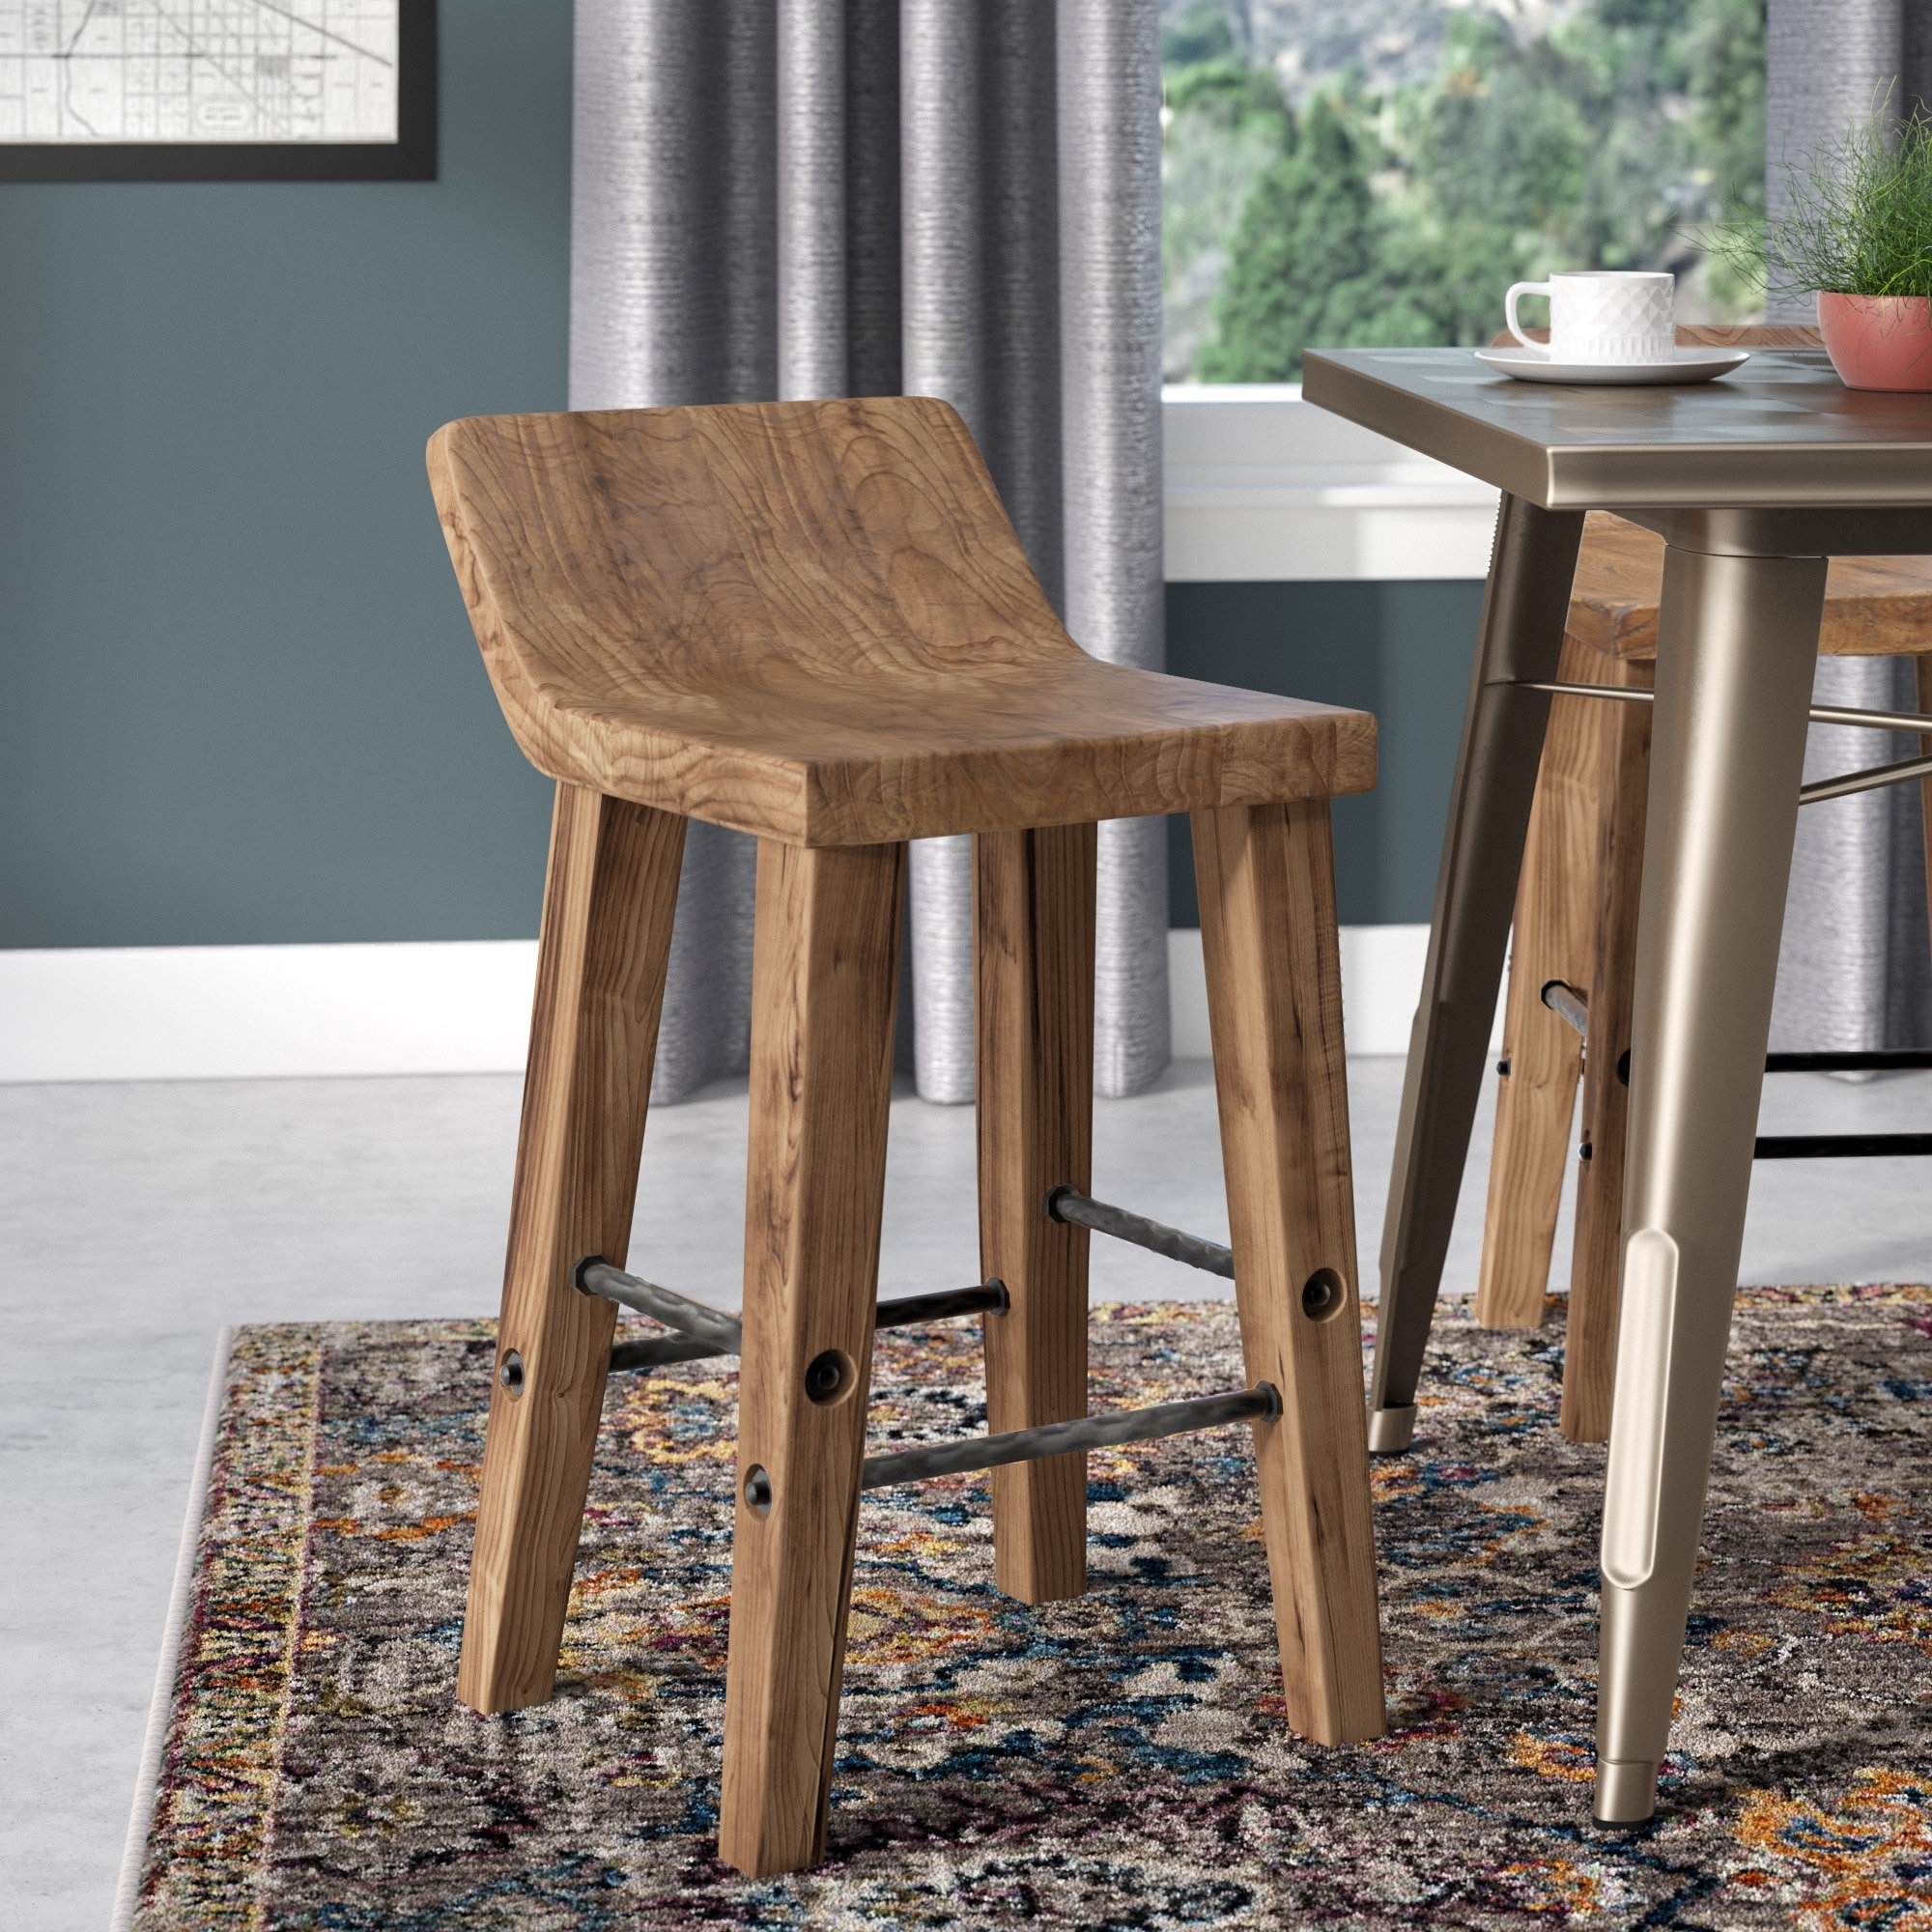 Well Liked Trent Austin Design Feinberg Bar & Counter Stool & Reviews (View 4 of 25)